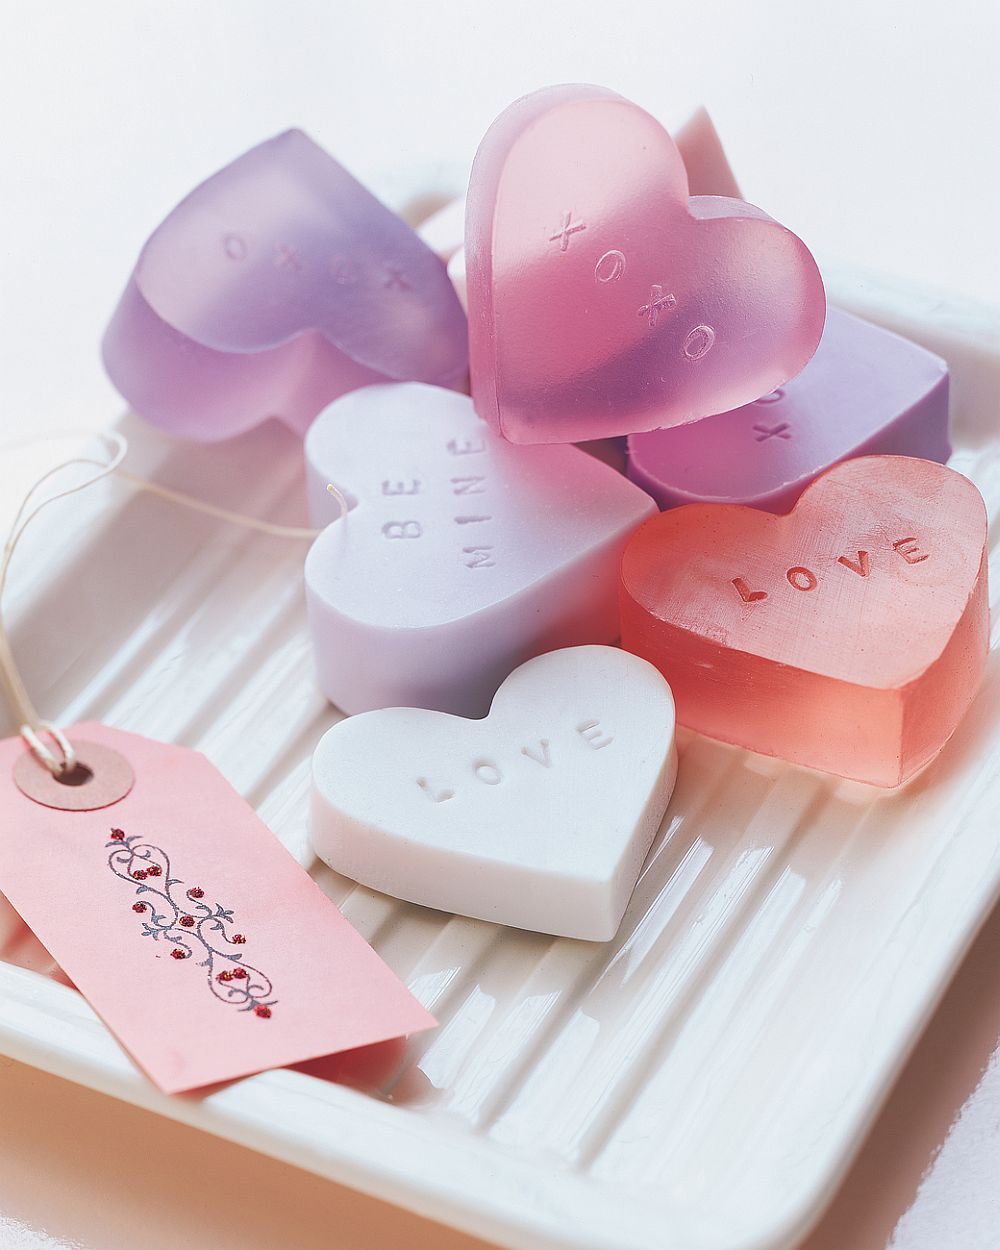 Take your Valentine's Day Celebration into the Bath with these DIY heart-shaped soaps